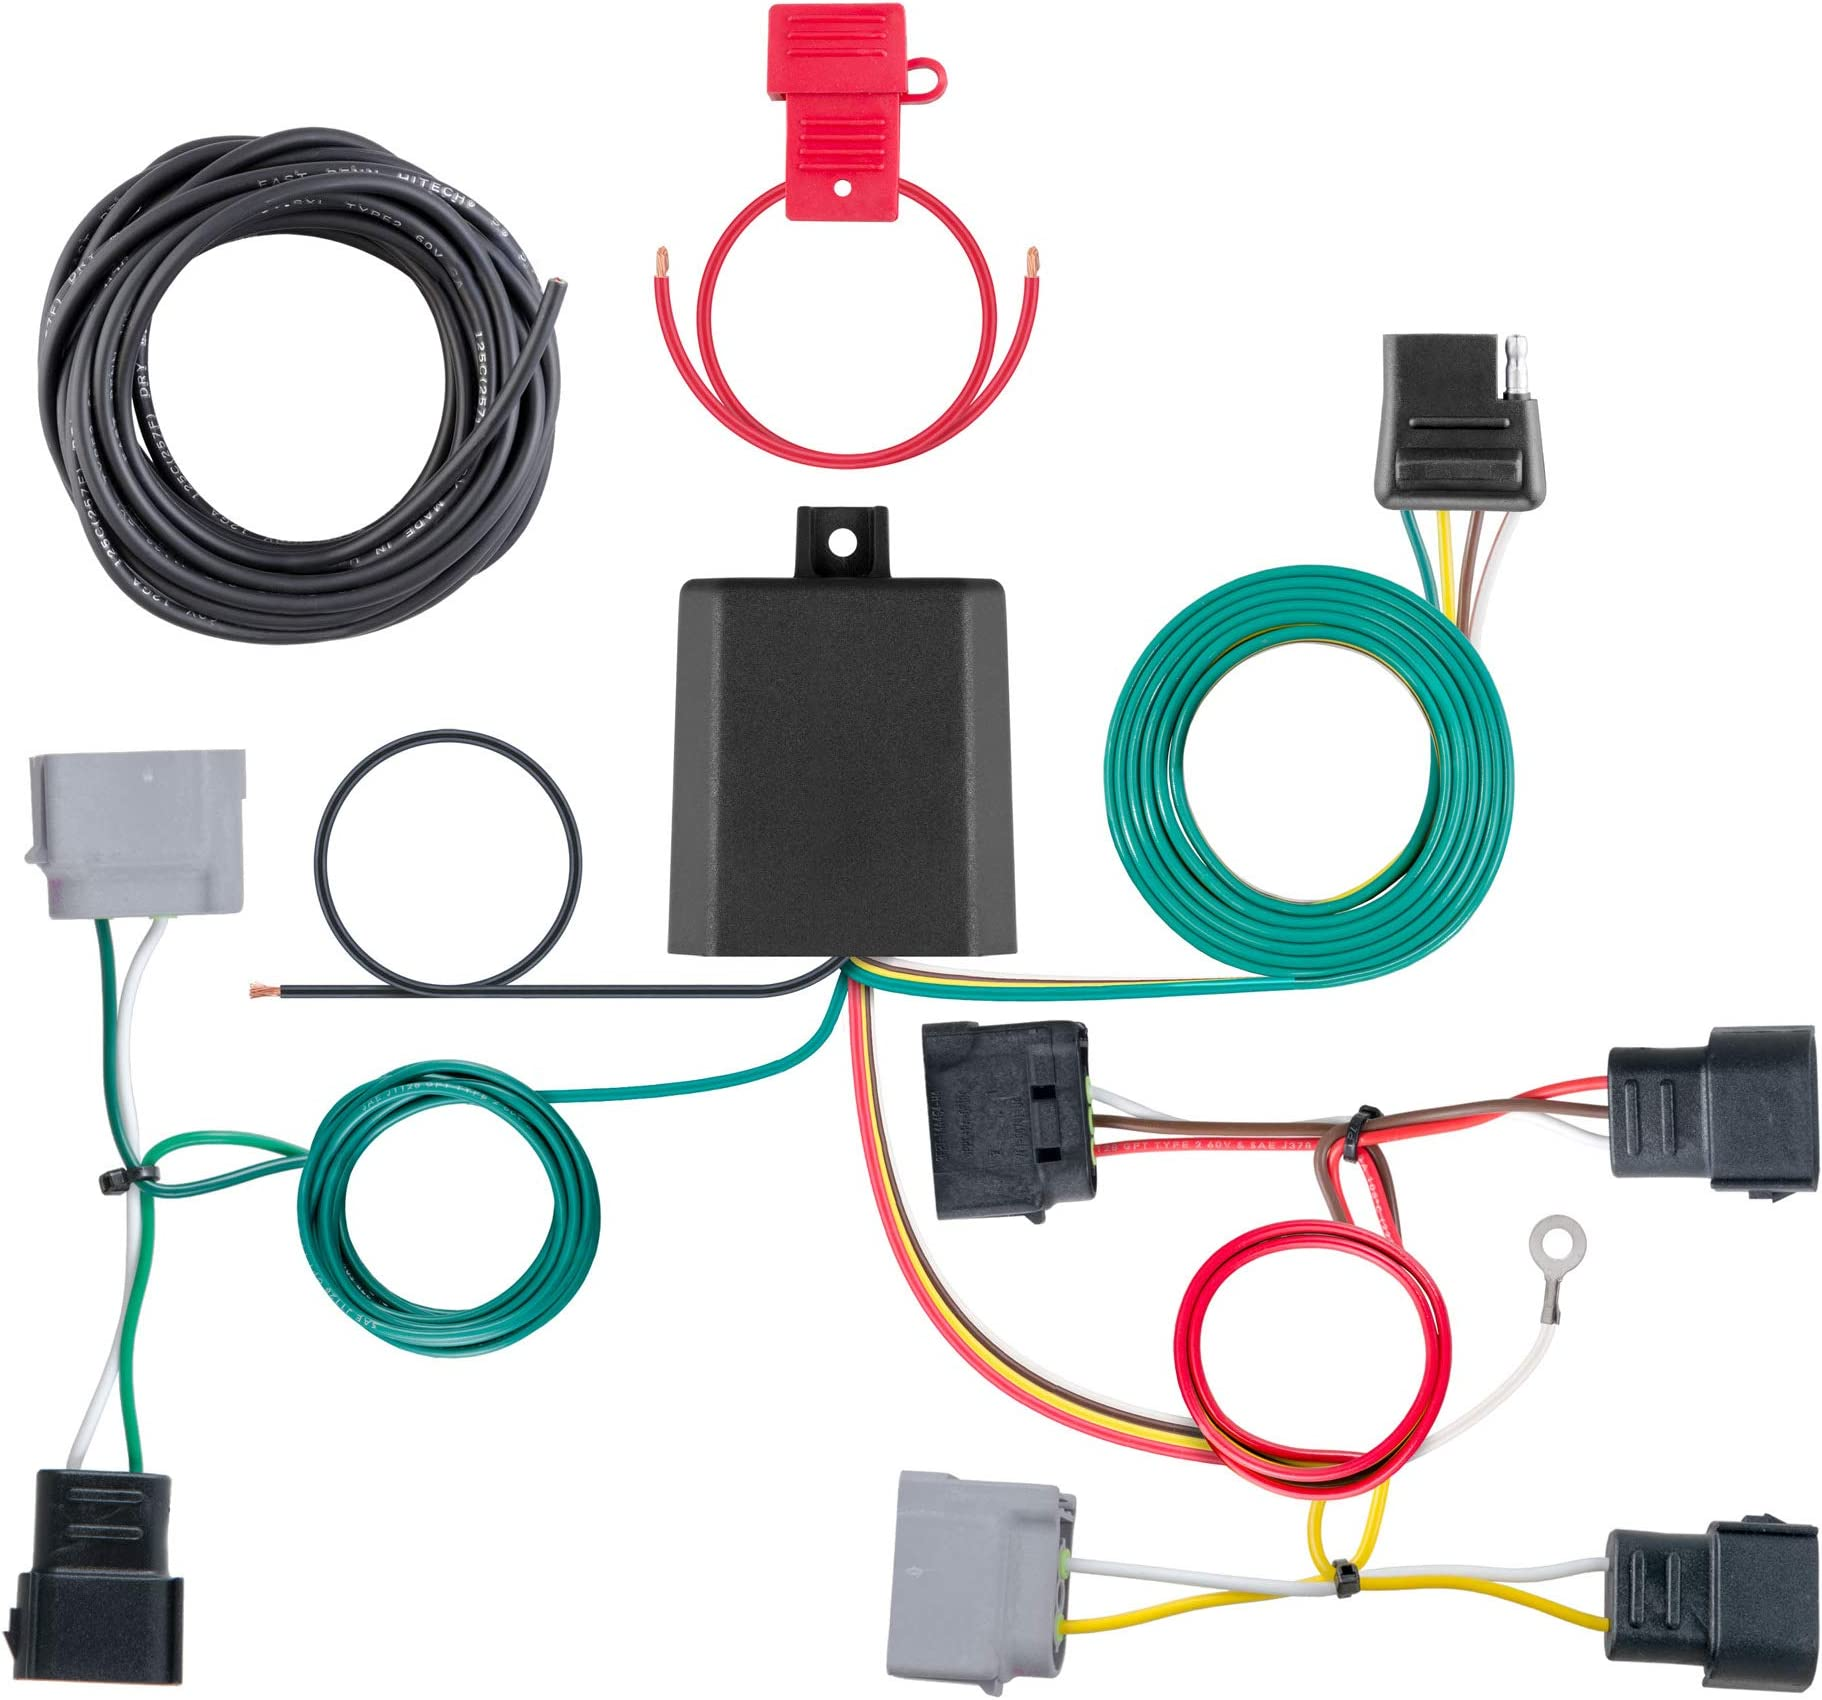 CURT 400 Vehicle Side Custom 40 Pin Trailer Wiring Harness, Select Ford  Escape, Mazda Tribute